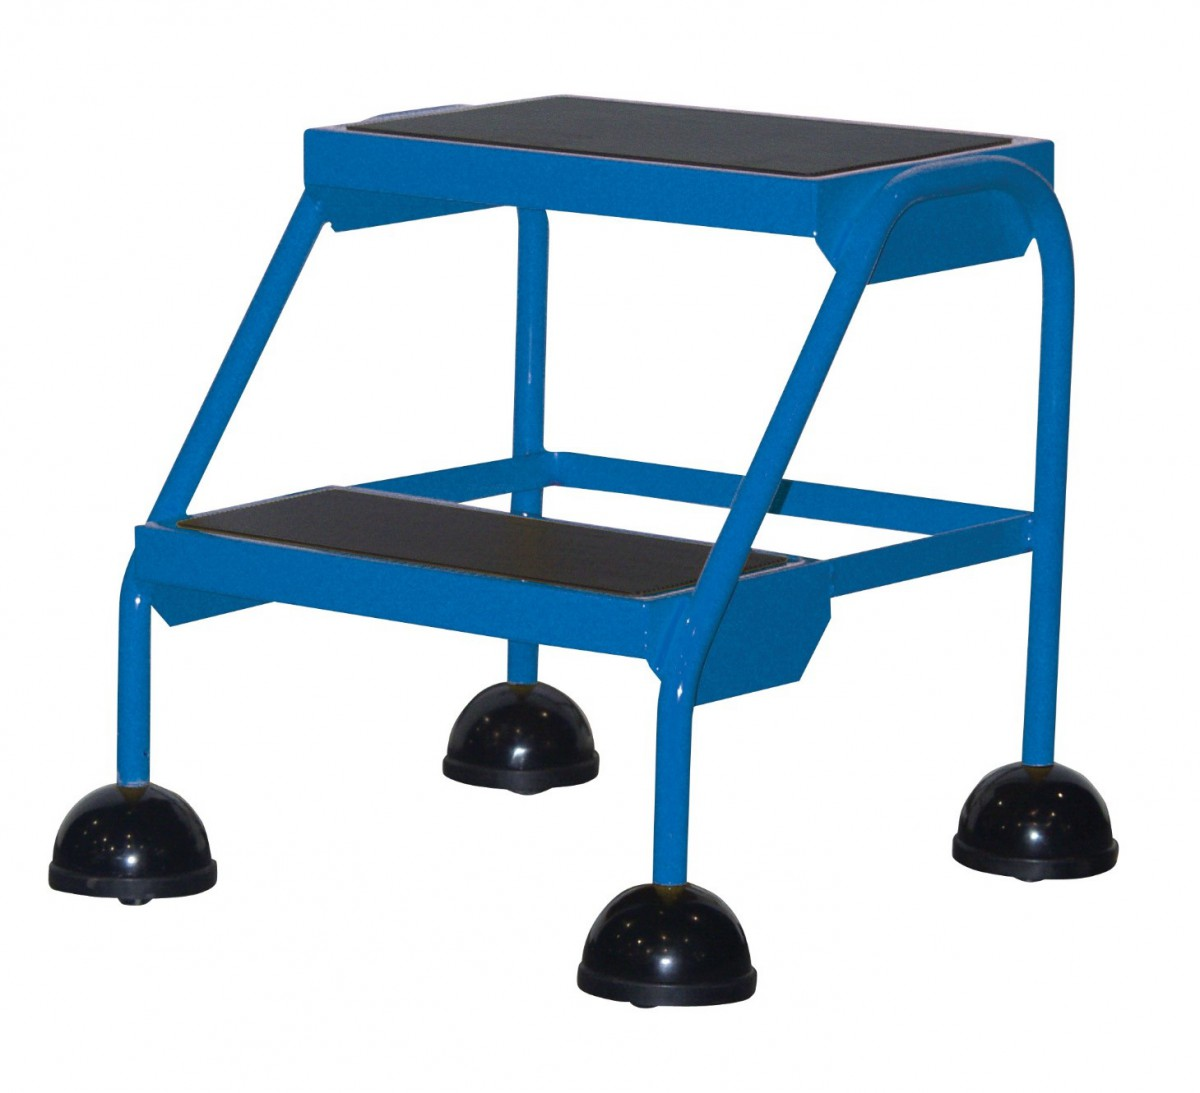 industrial rolling laddertype ft louisville with typefinder casters type and step aluminiumstep stool handle ladder